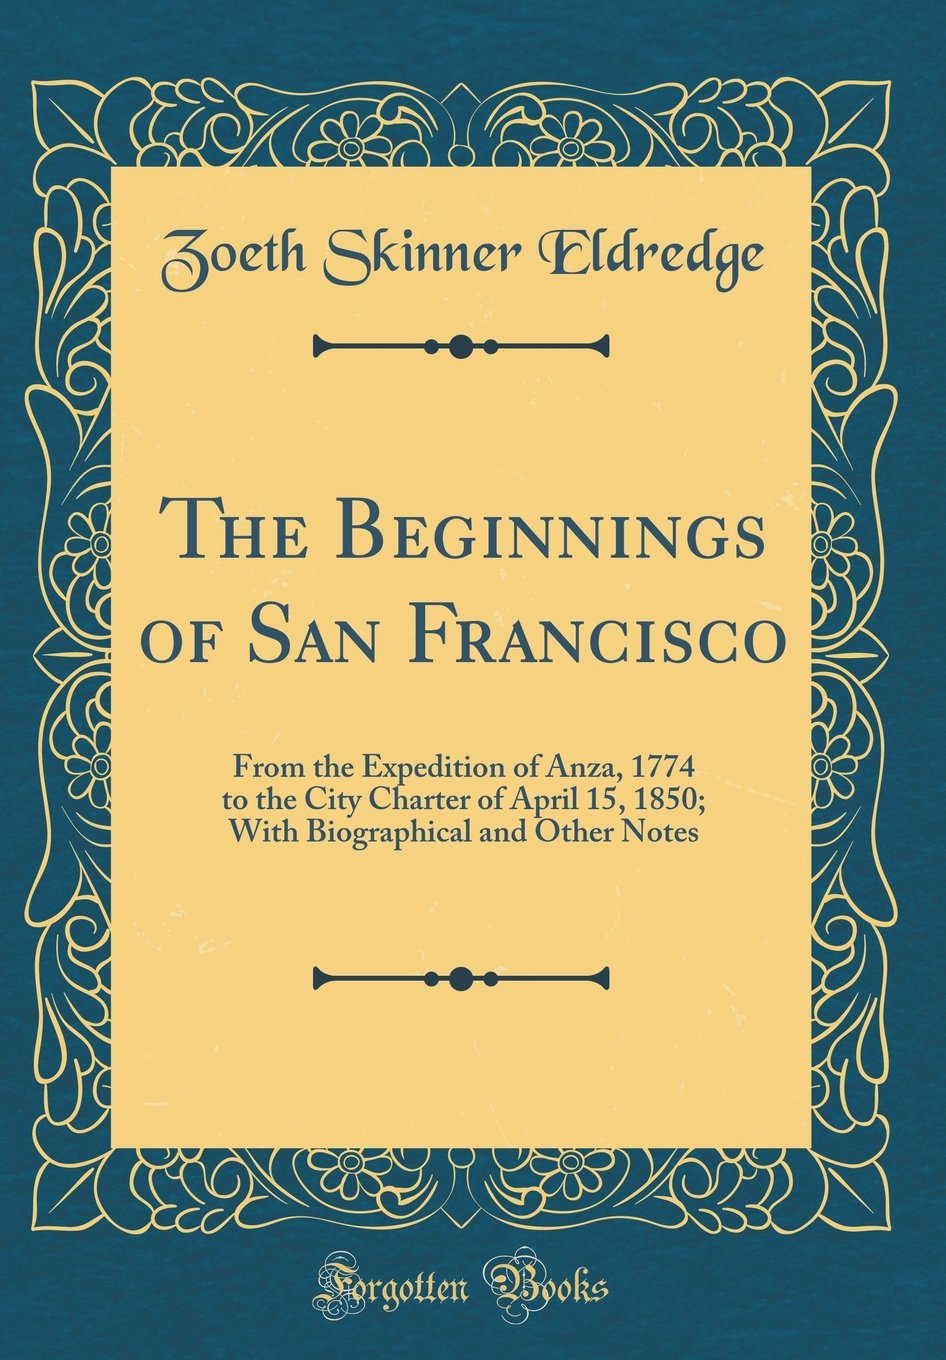 The Beginnings of San Francisco: From the Expedition of Anza, 1774 to the City Charter of April 15, 1850; With Biographical and Other Notes (Classic Reprint) PDF